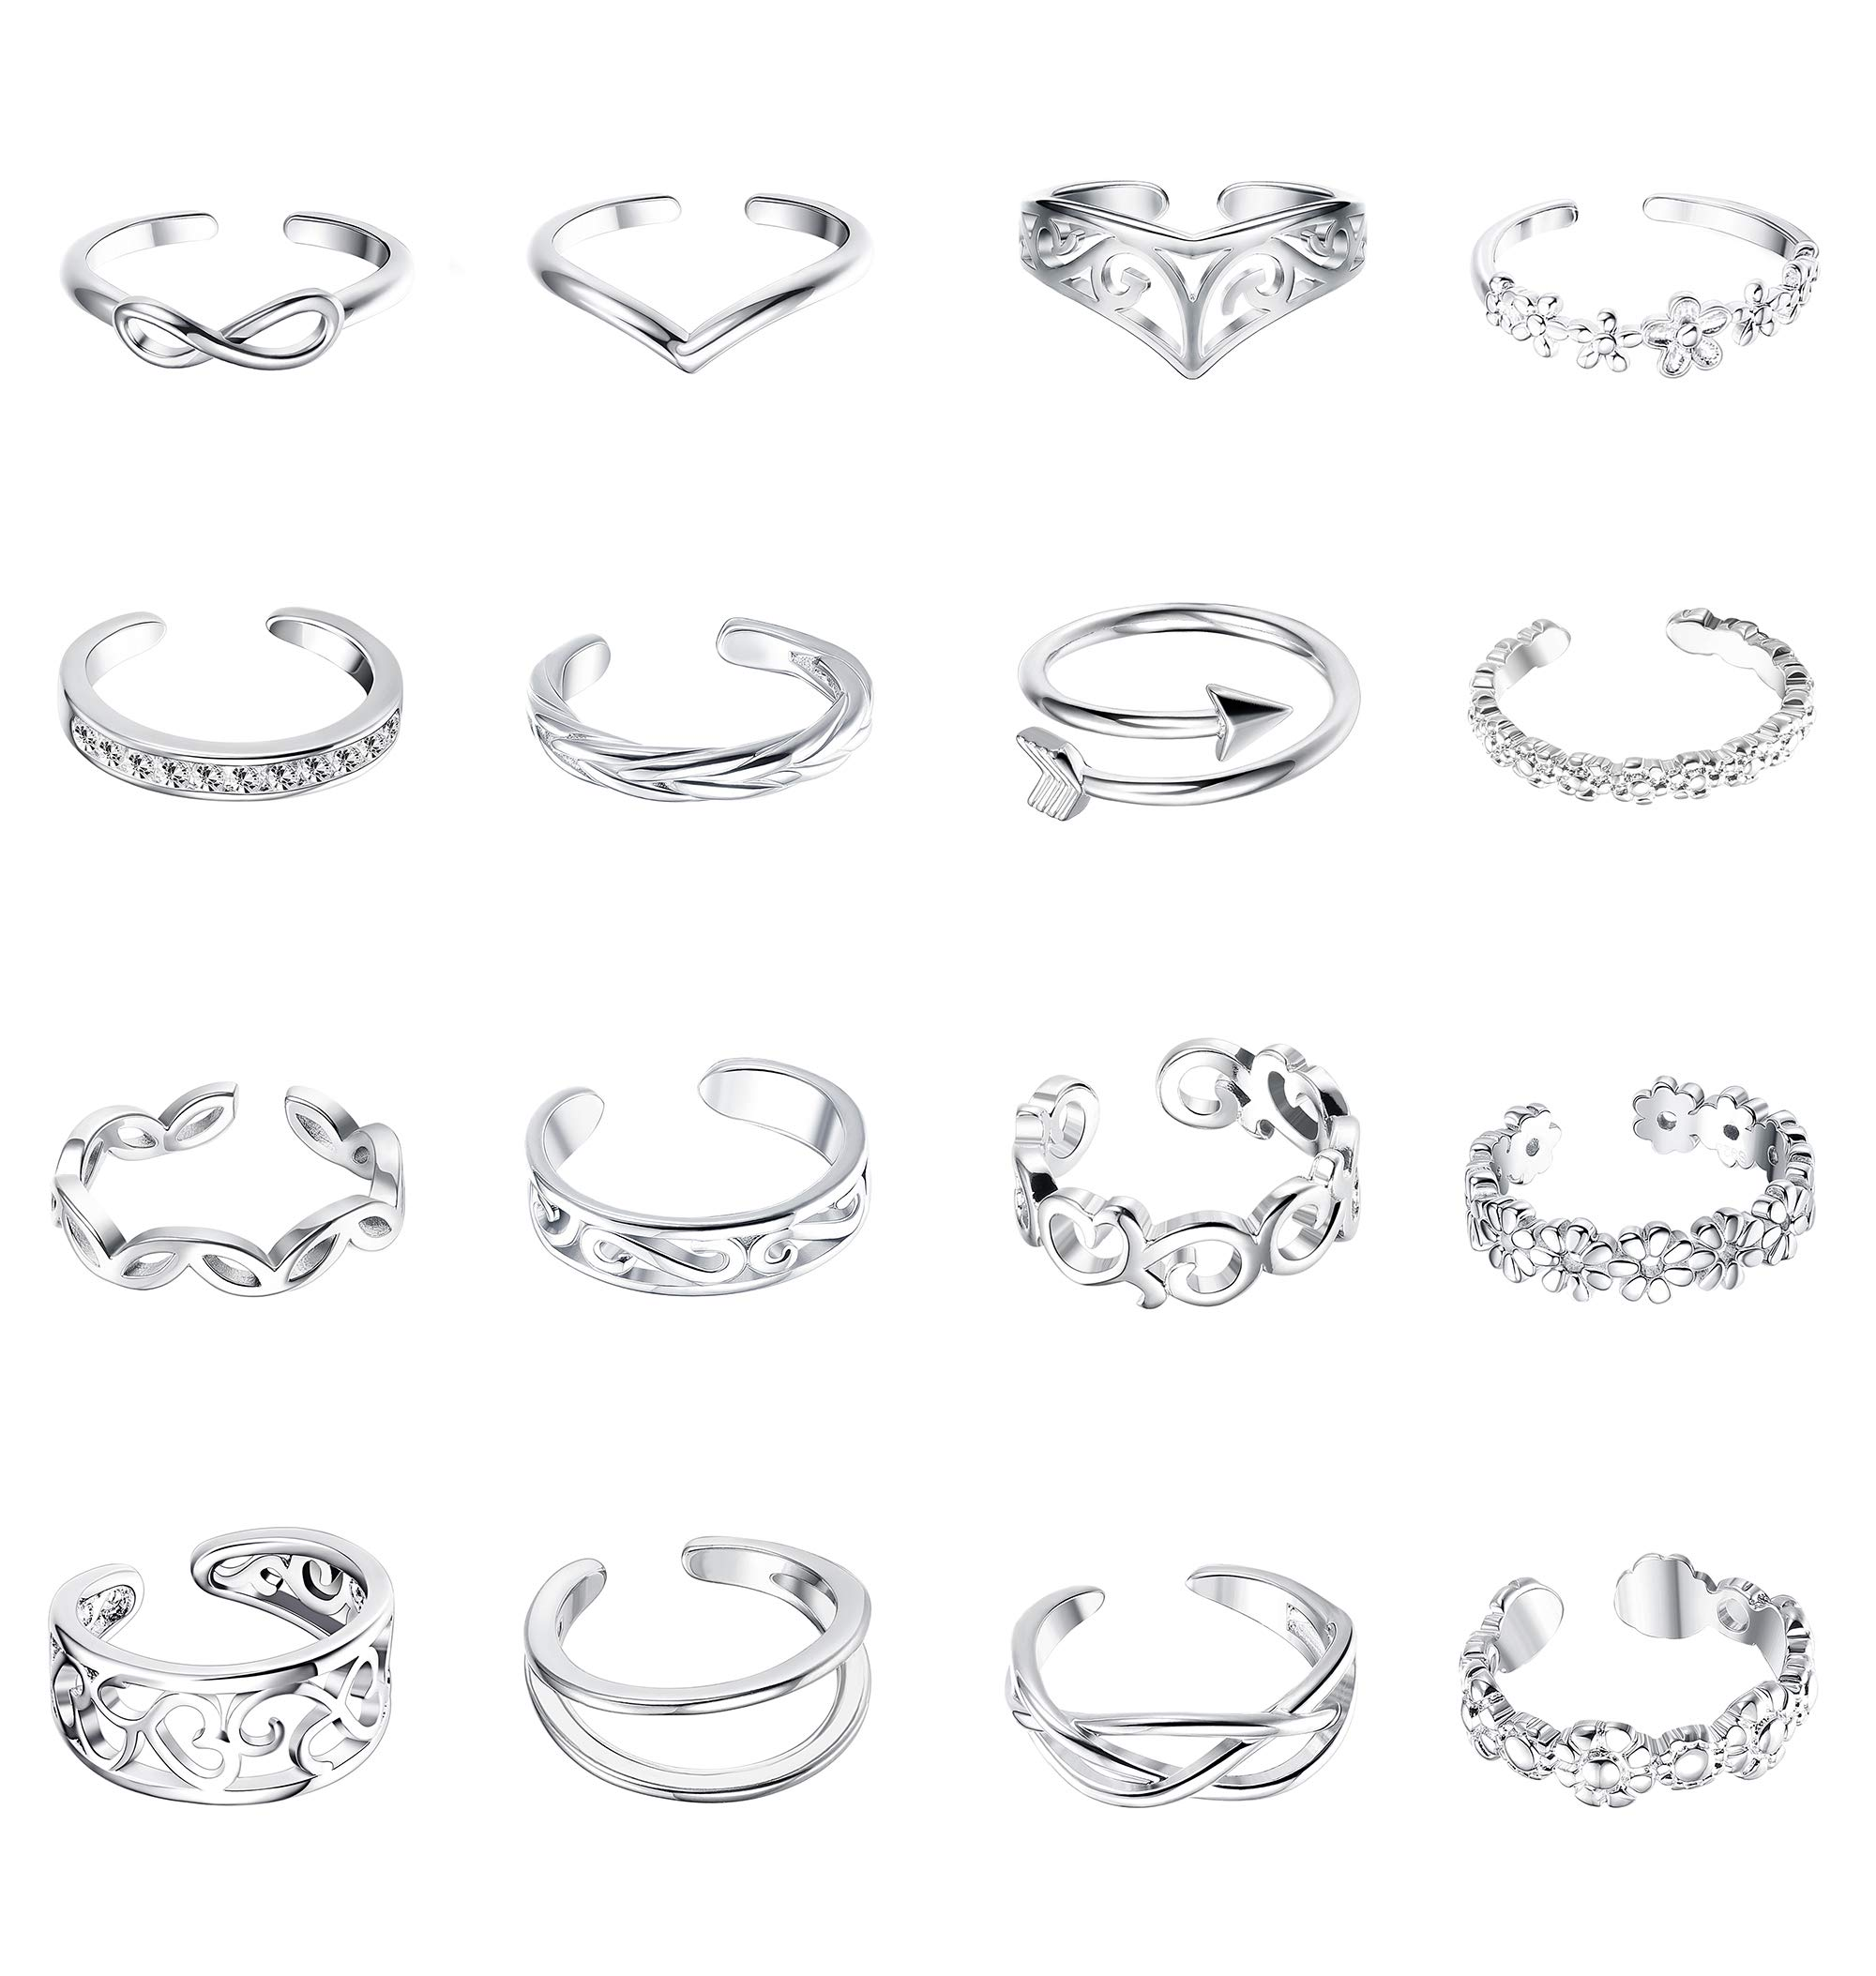 LOYALLOOK 16Pcs Adjustable CZ Silver Cuff Tail Knuckle Toe Rings Set for Women Girls Open Flower Knot Simple Toe Rings Set Women Gift Foot Jewelry by LOYALLOOK